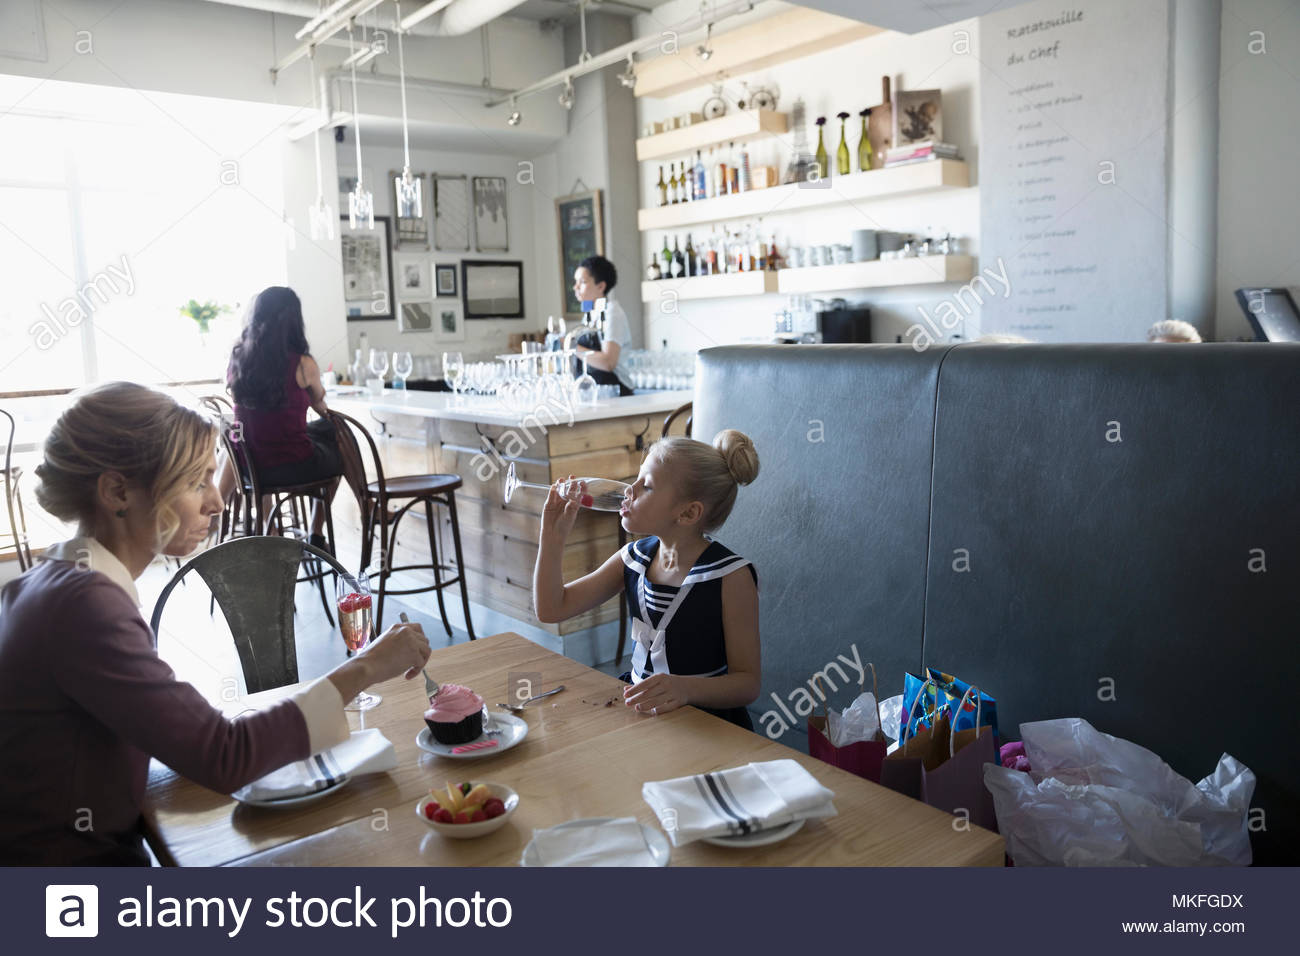 Mother and daughter celebrating birthday, eating cupcake in cafe - Stock Image